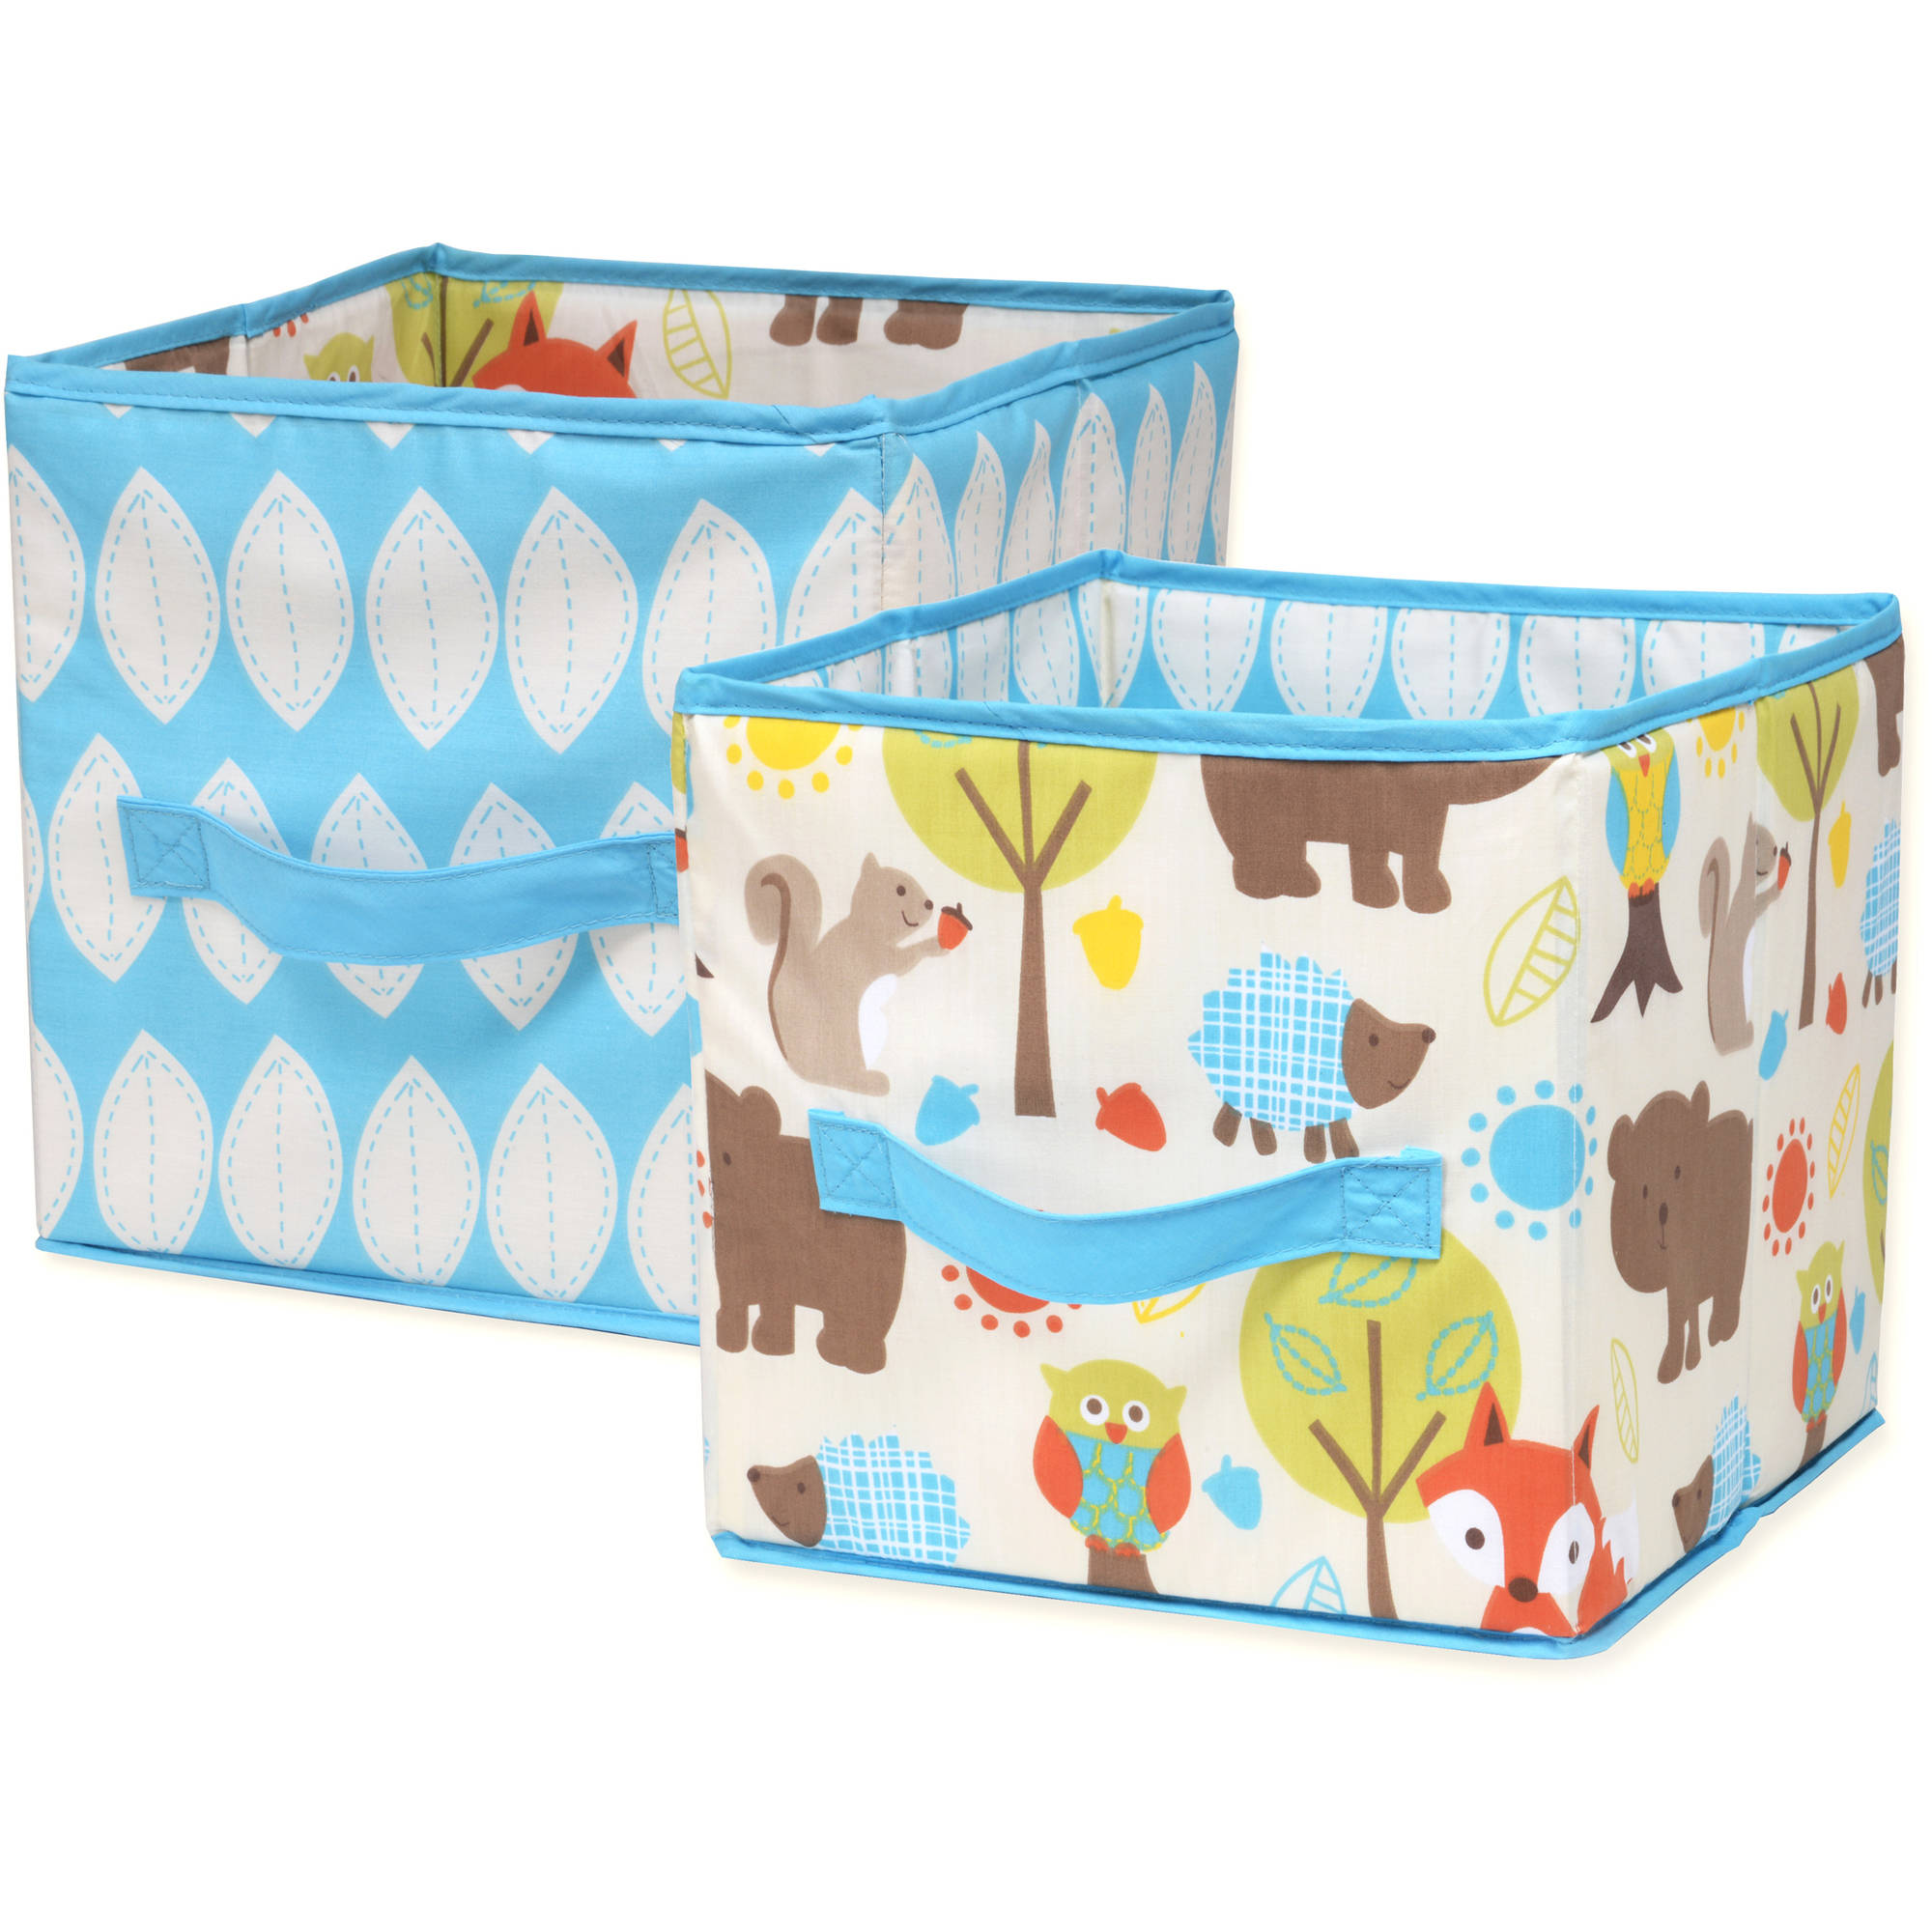 Little Bedding By Nojo Woodlands Collapsible Storage Bin, 2 Pack    Walmart.com